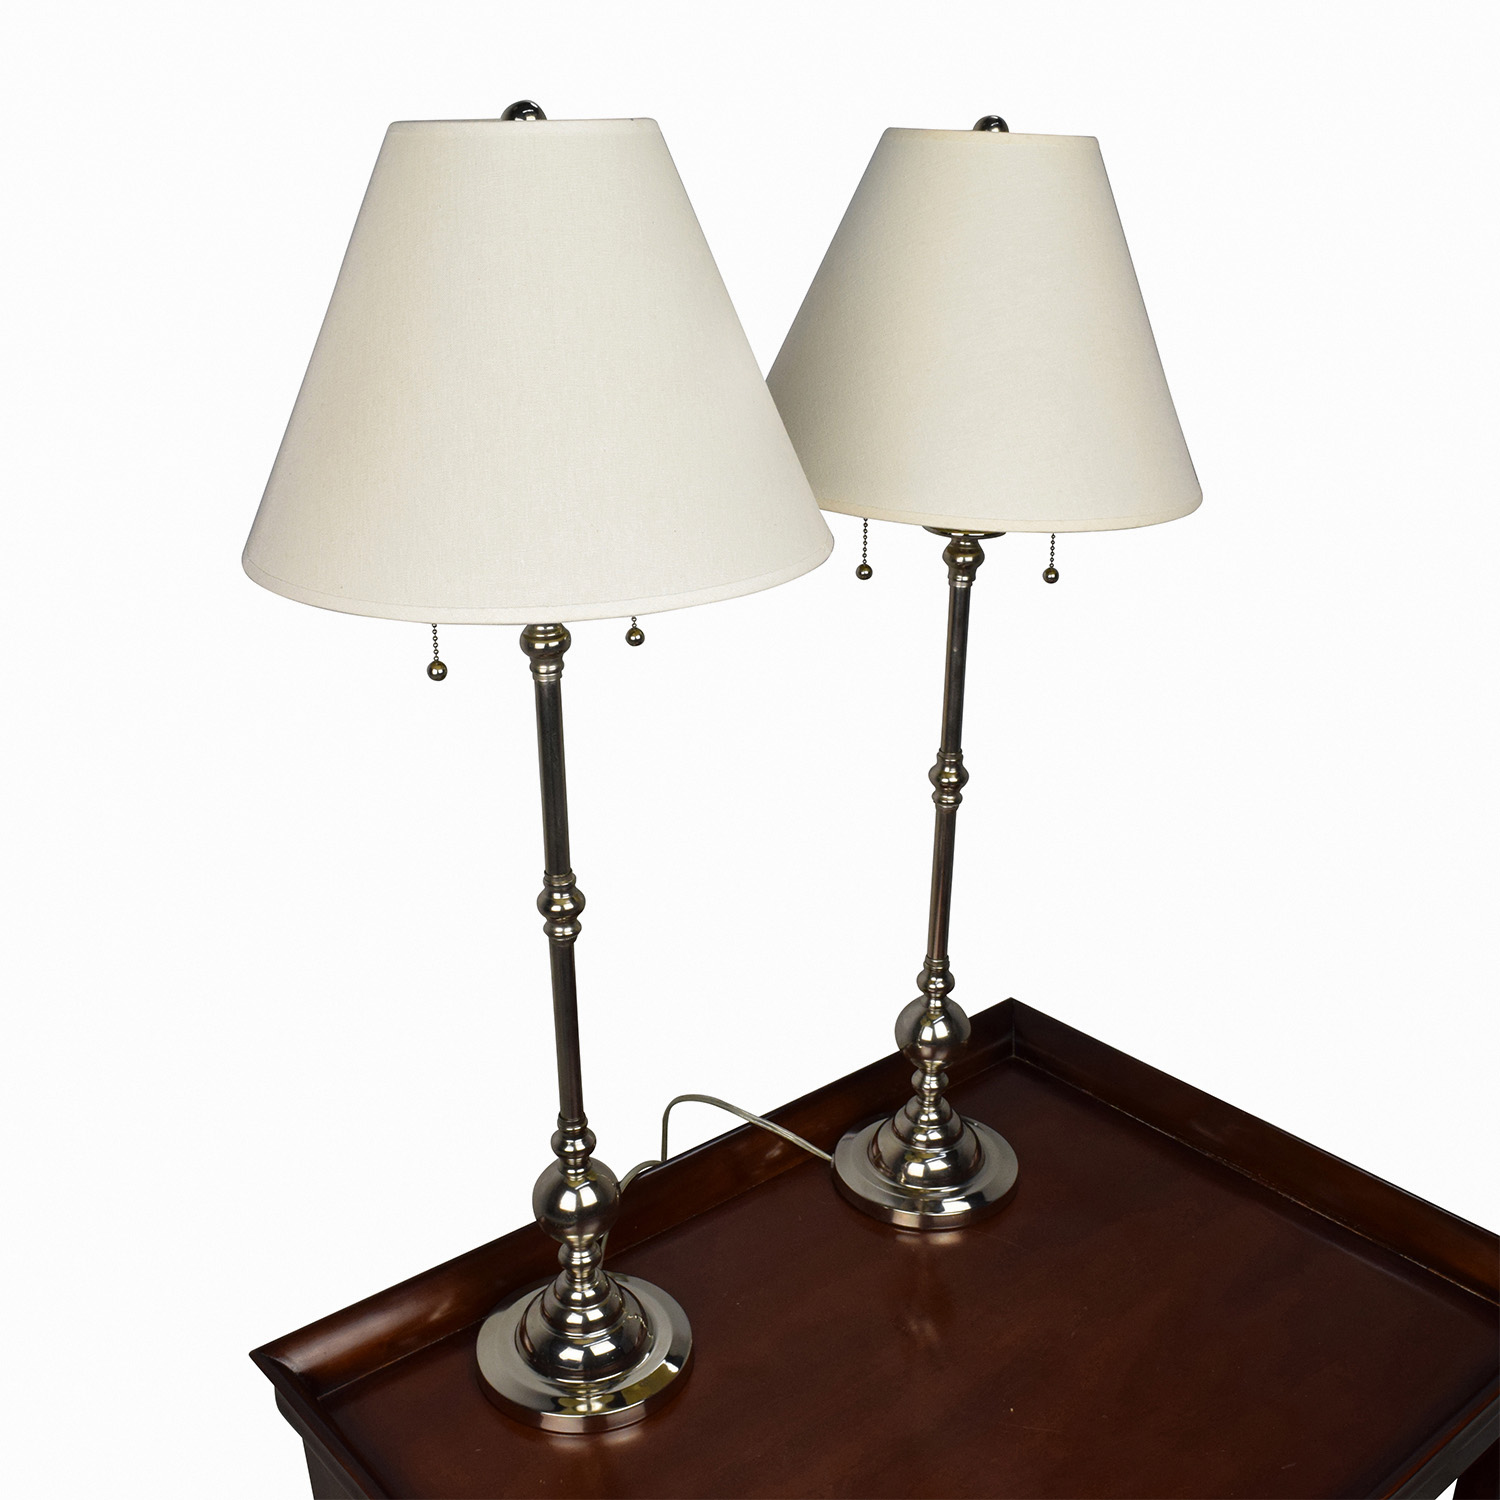 Two Silver Table Dresser Lamps Decor